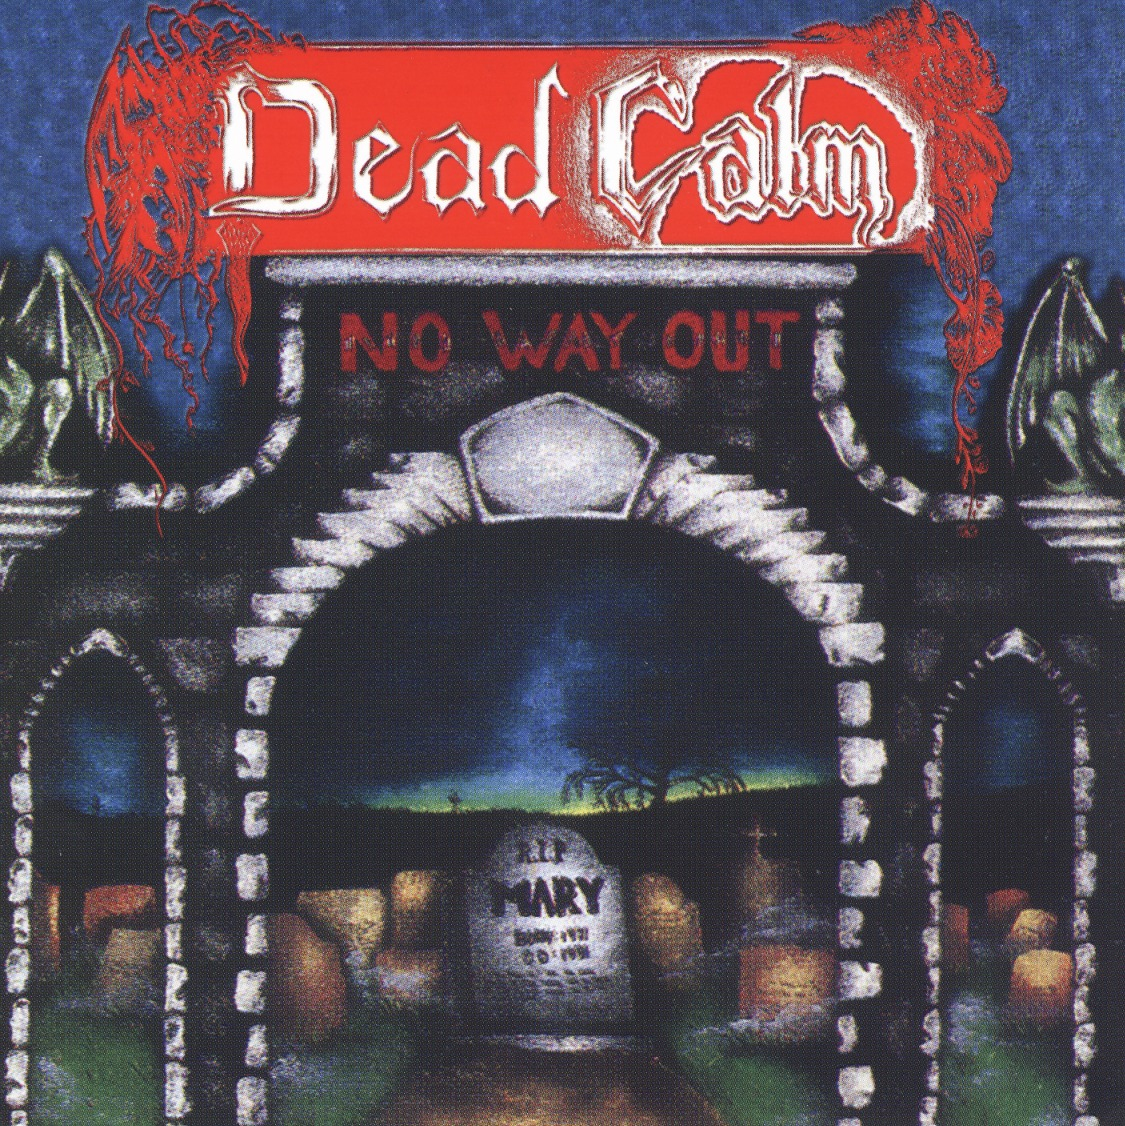 DEAD CALM (Canada) / No Way Out